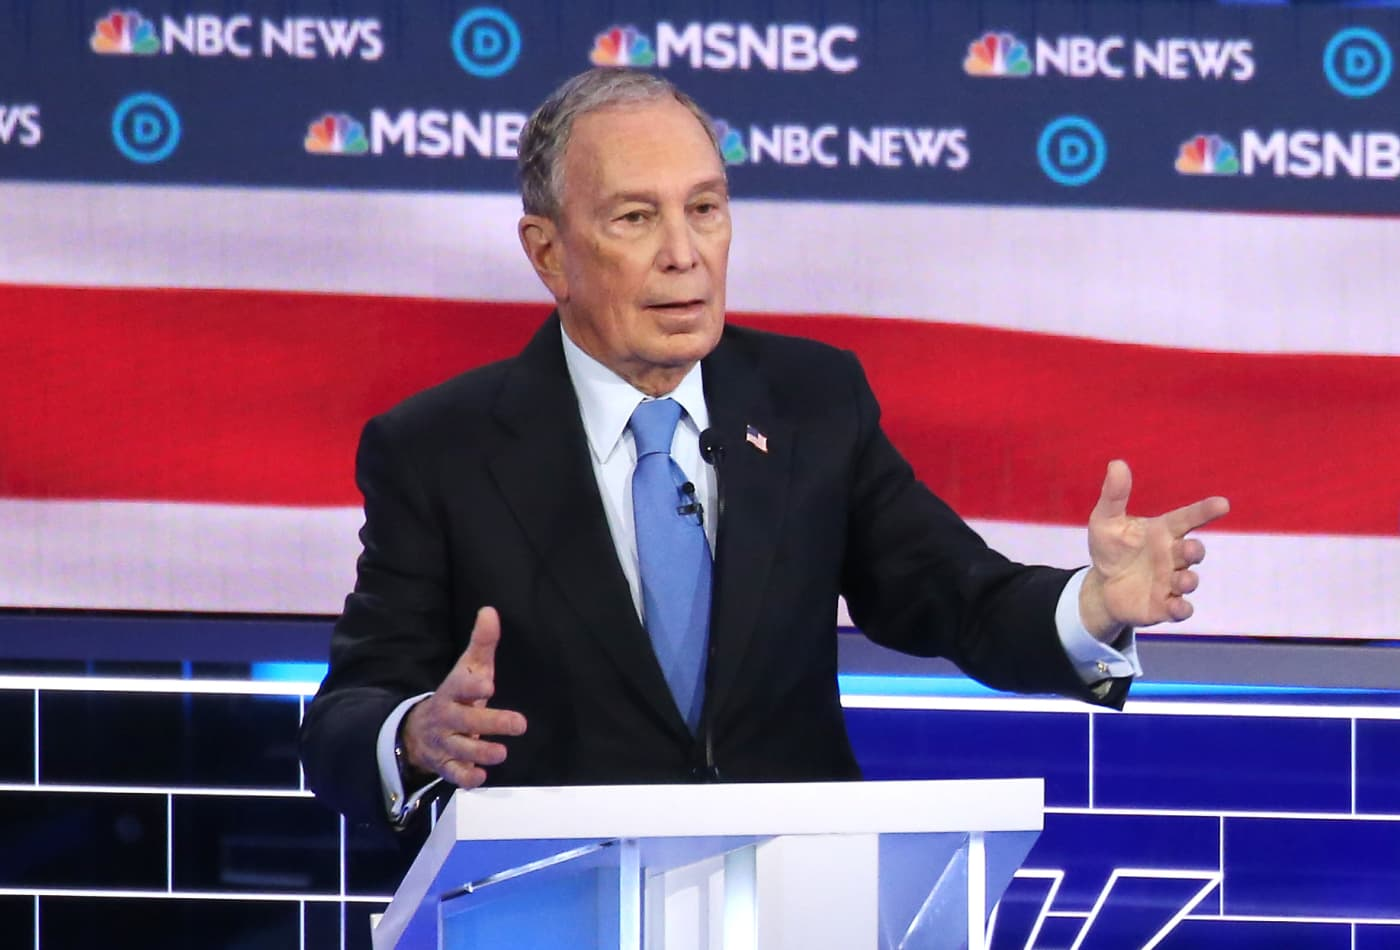 Bloomberg's debate debacle may be the 'beginning of the end' of his 2020 run, pollster says